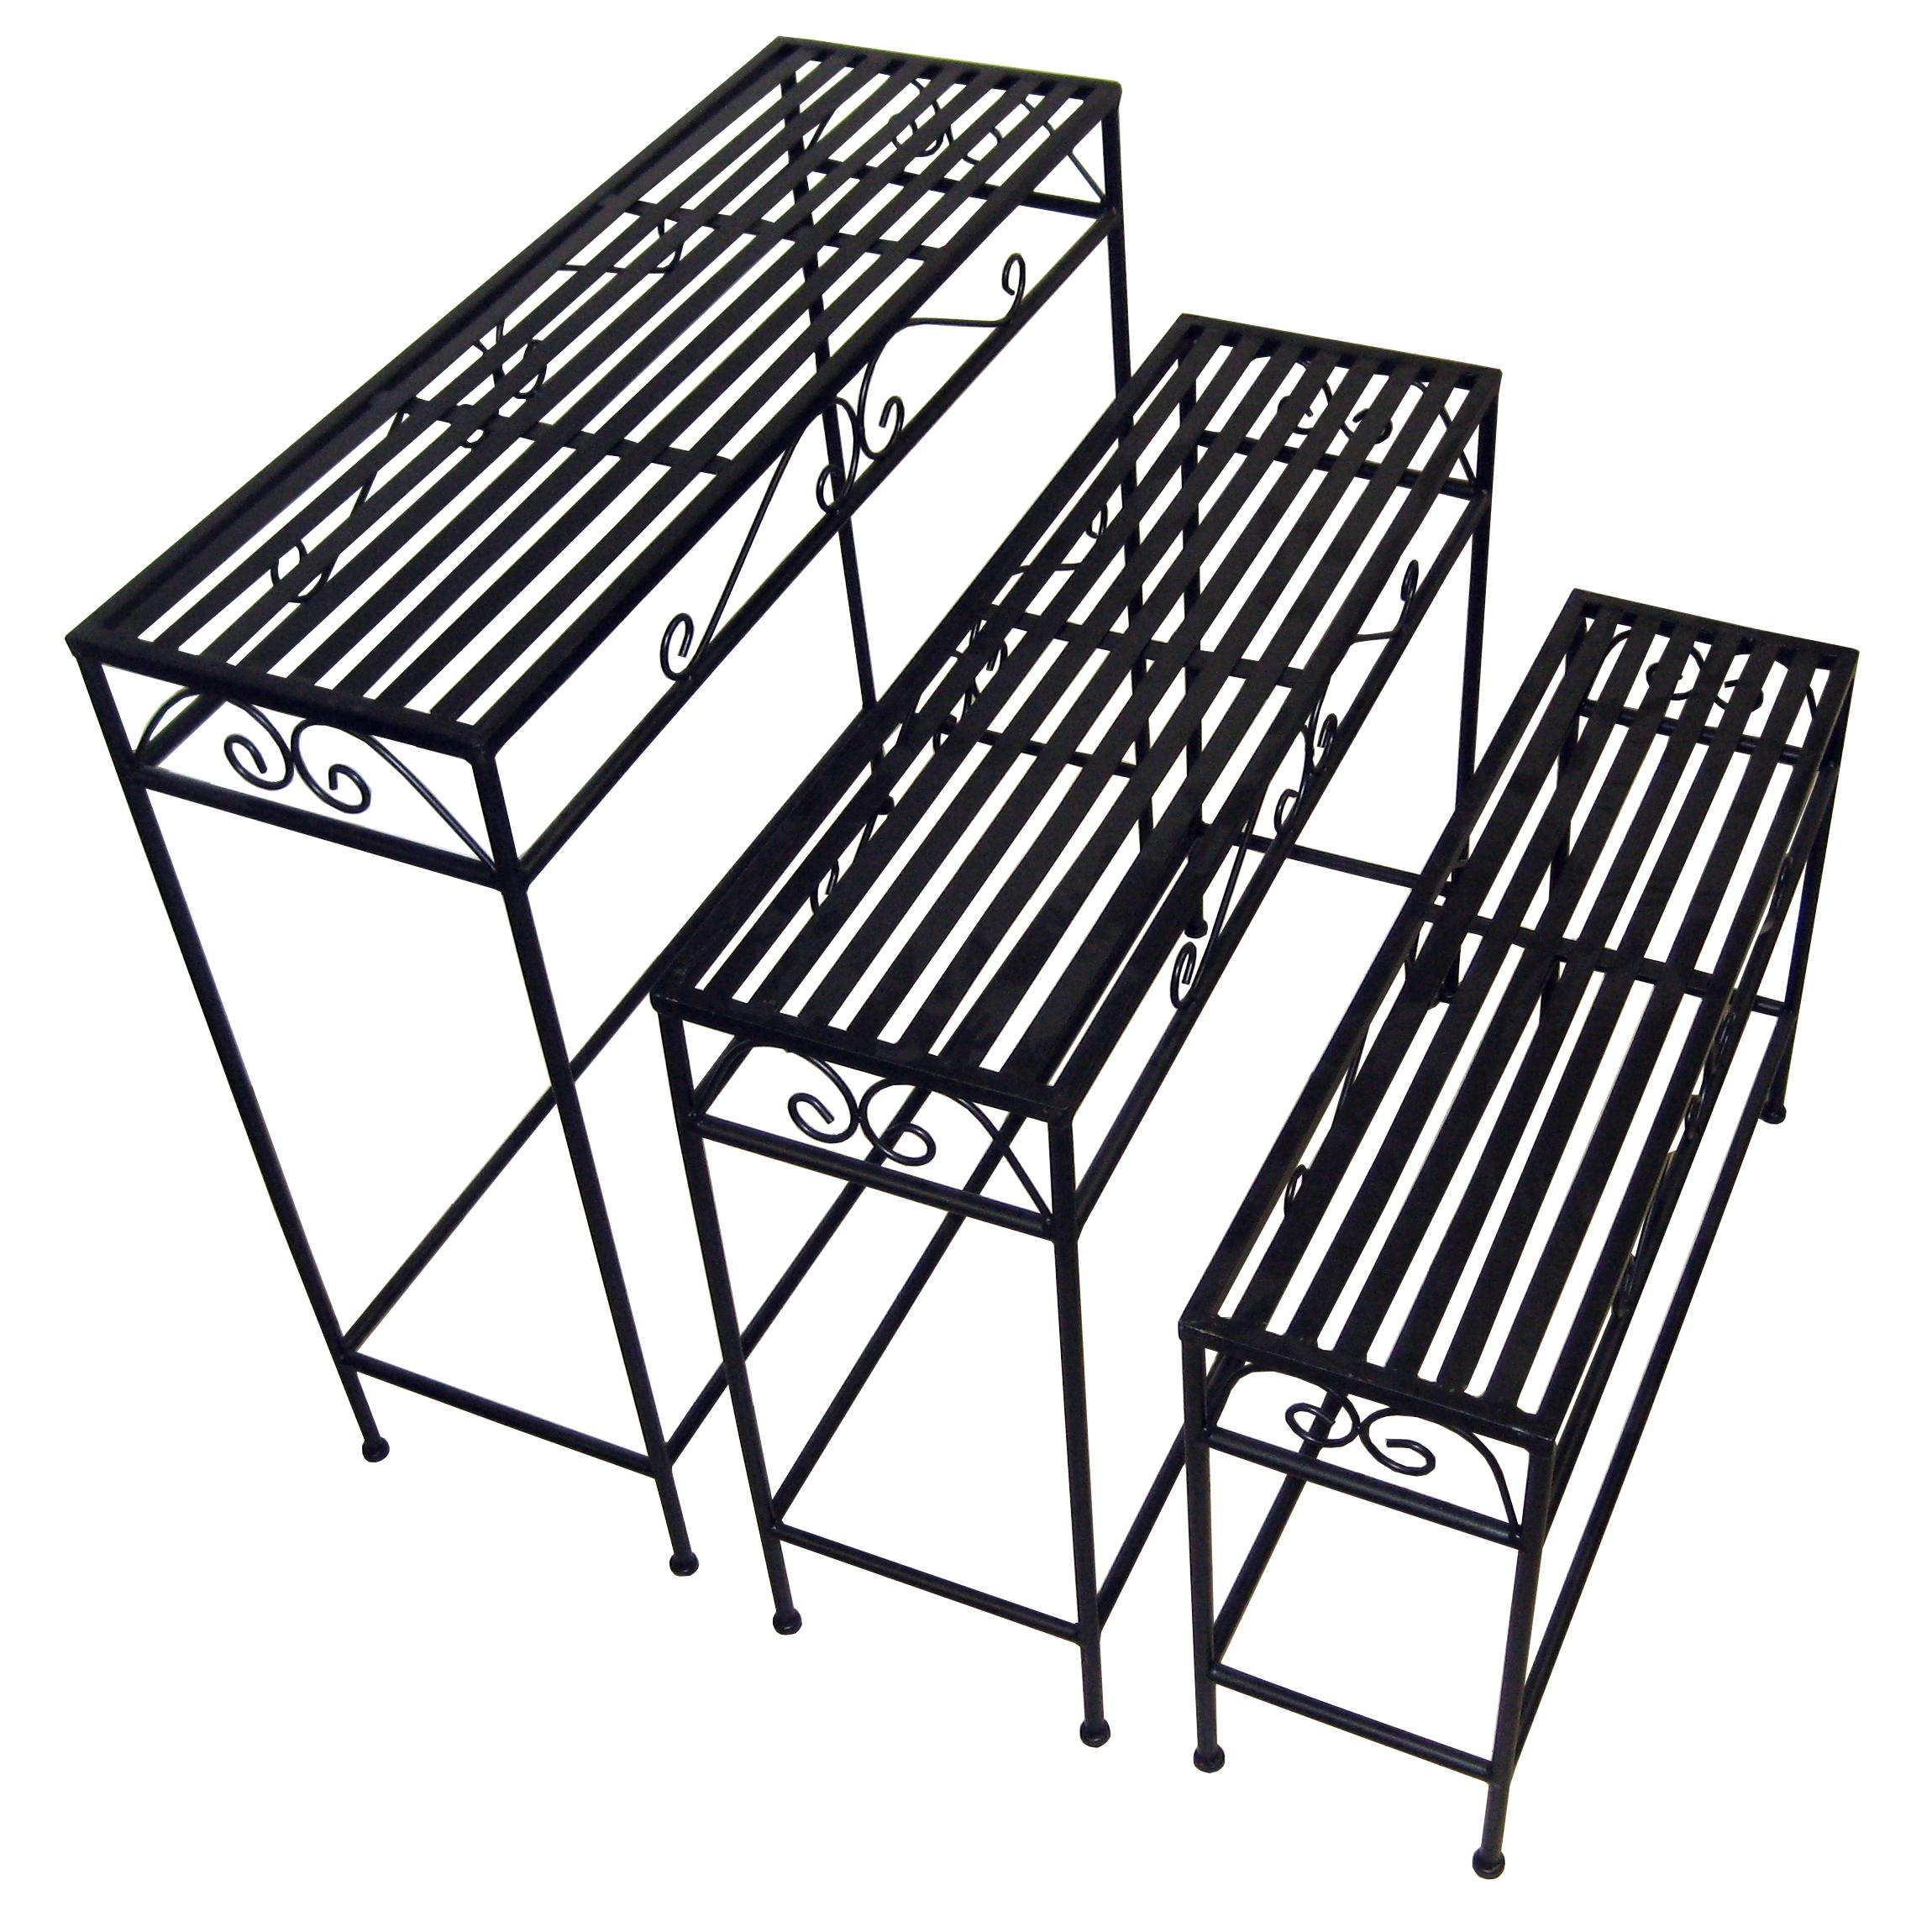 Nesting Tables For Patio | Mpfmpf Almirah, Beds, Wardrobes And Pertaining To Patio Sofa Tables (View 4 of 20)